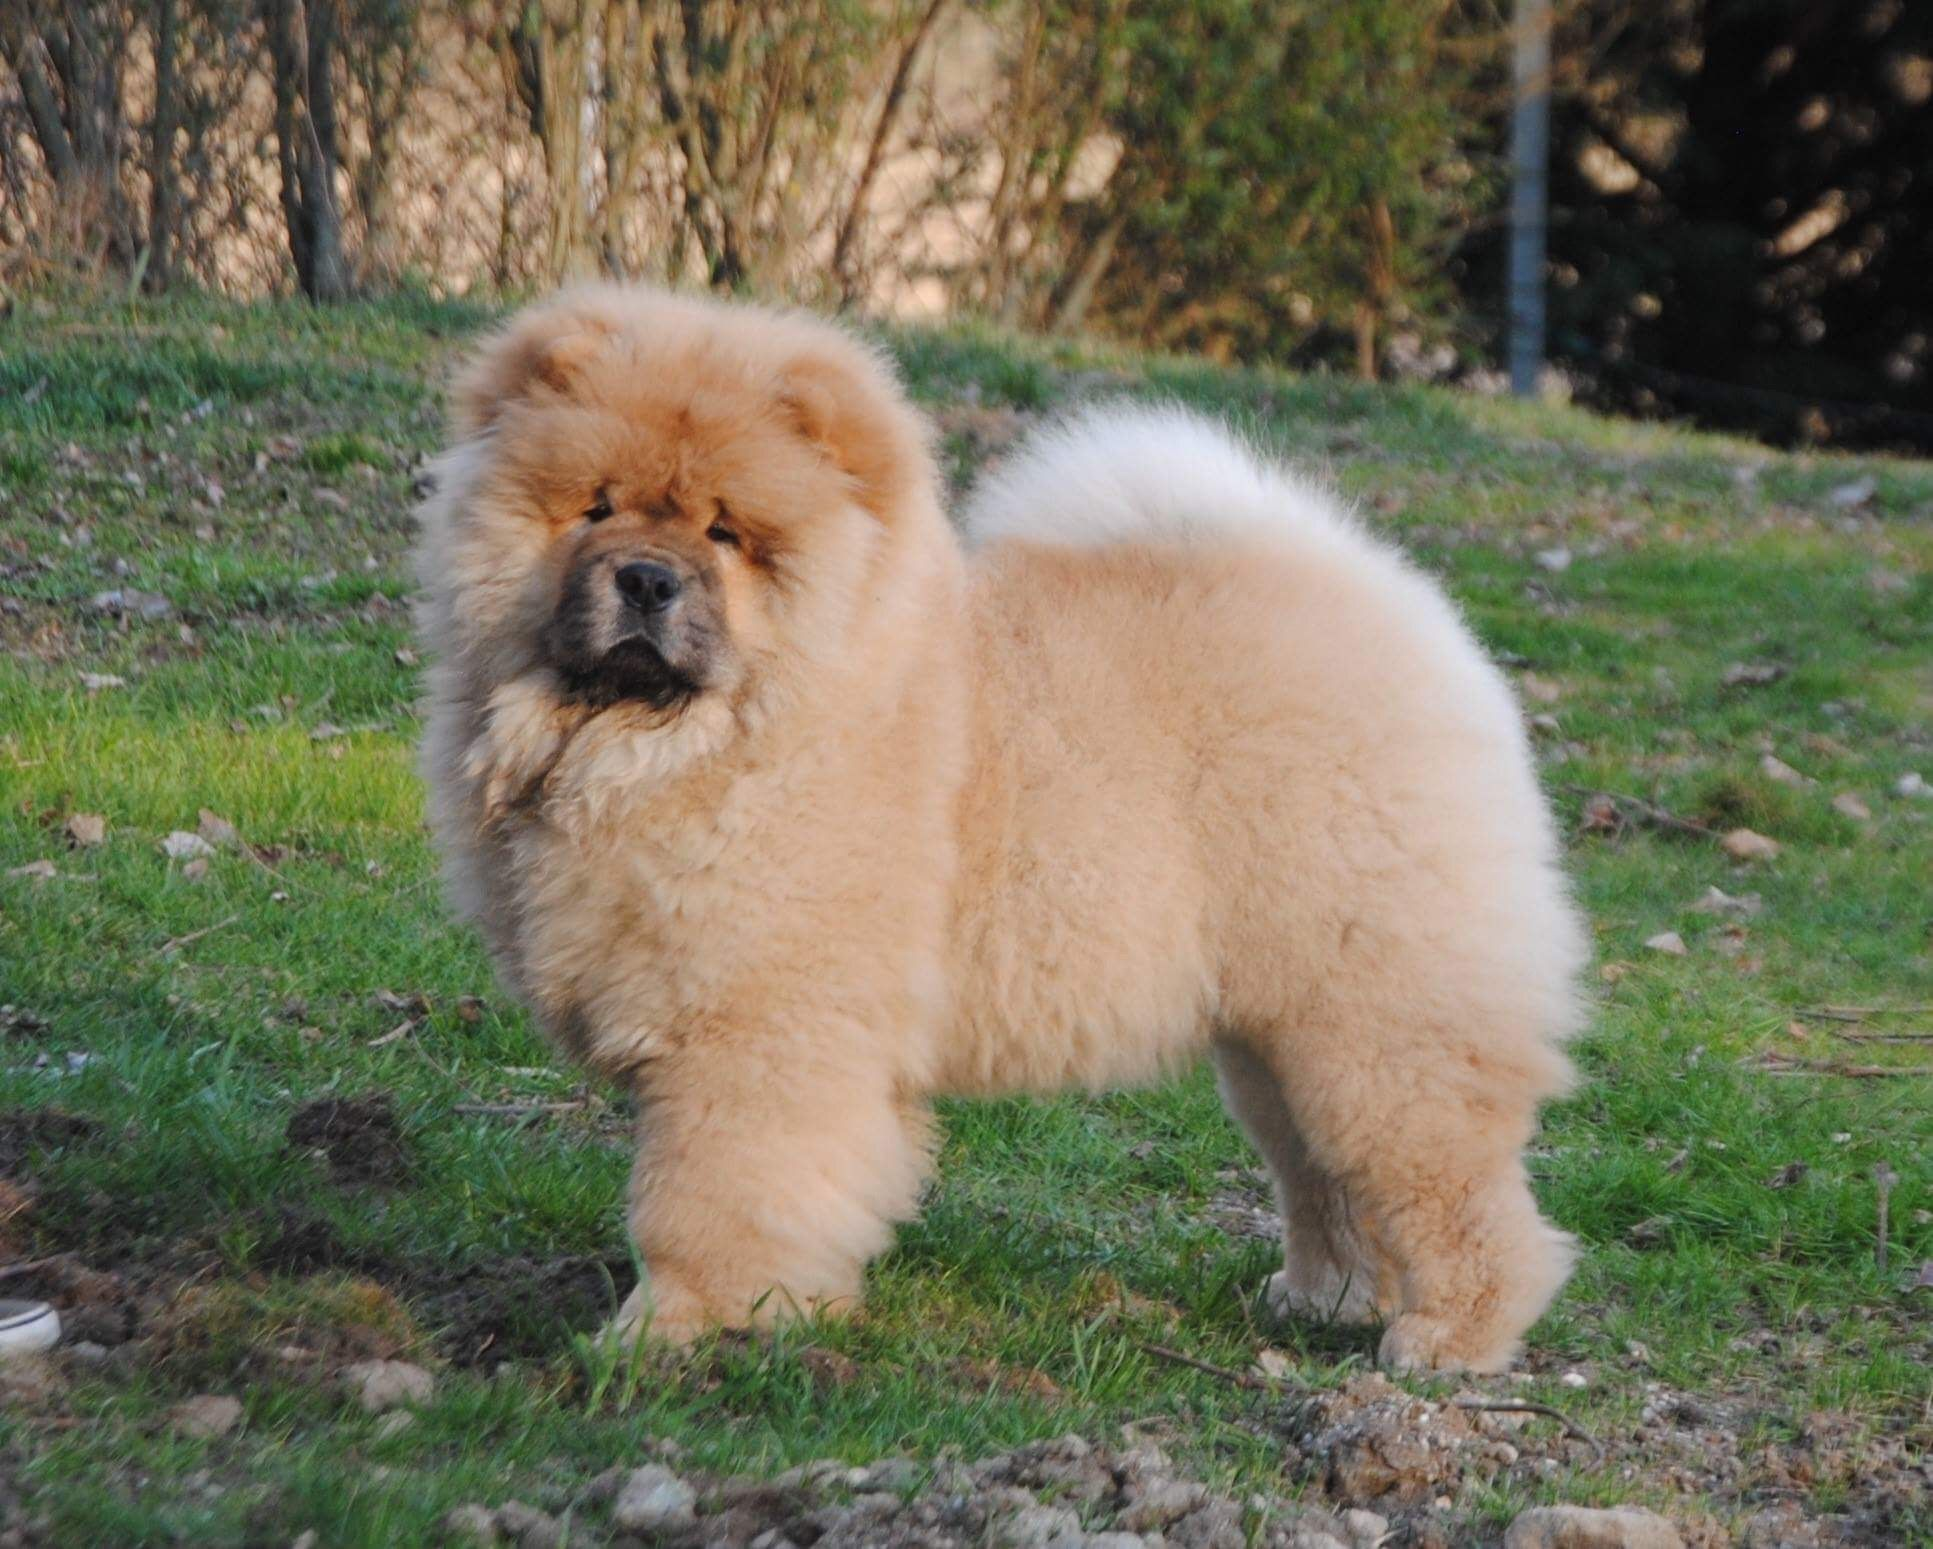 Highland S Lily Chow Chow Puppy 6 Months Old